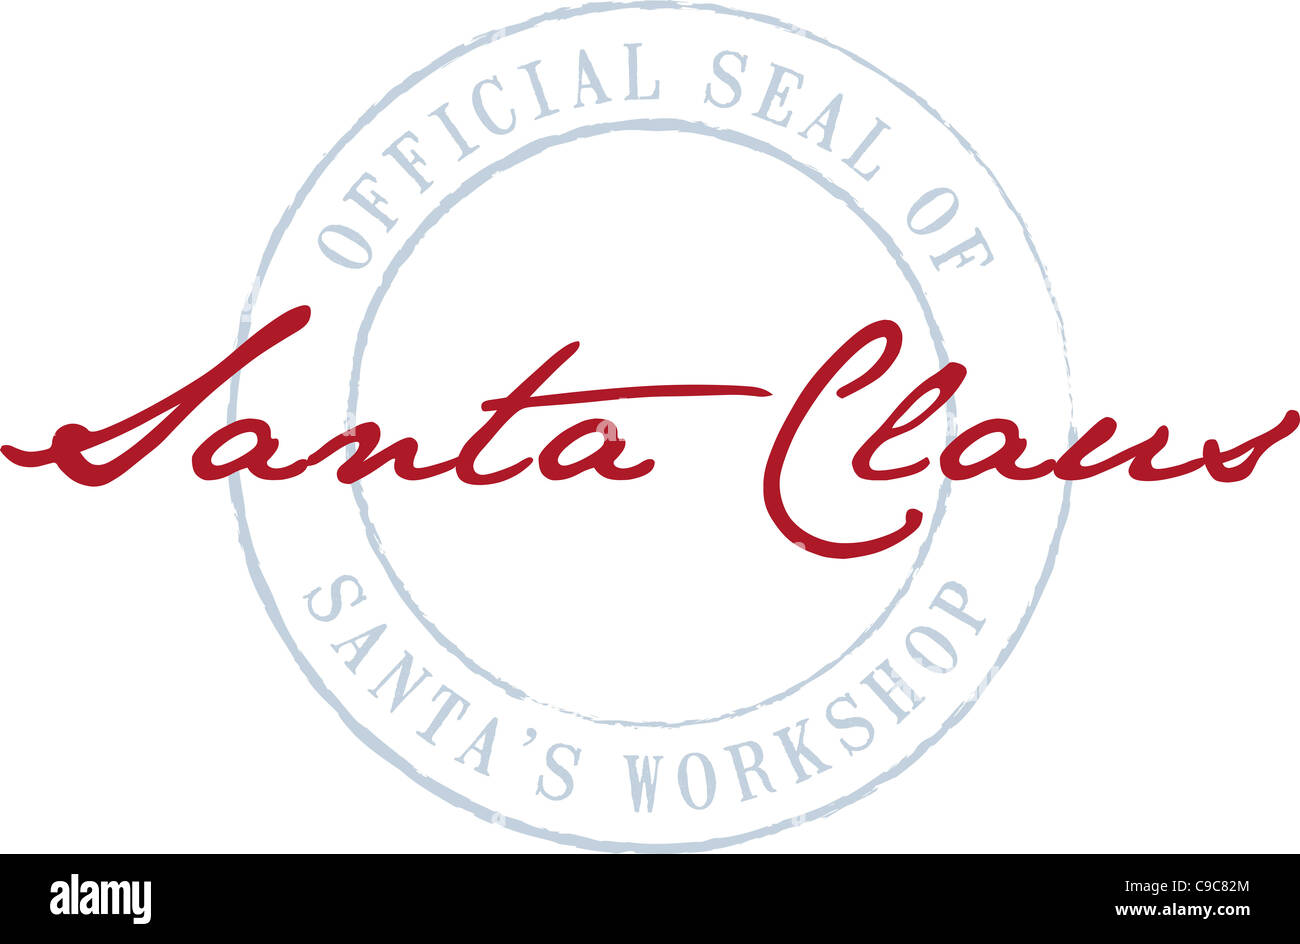 Santa Claus's red signature is signed on top of the circular ...